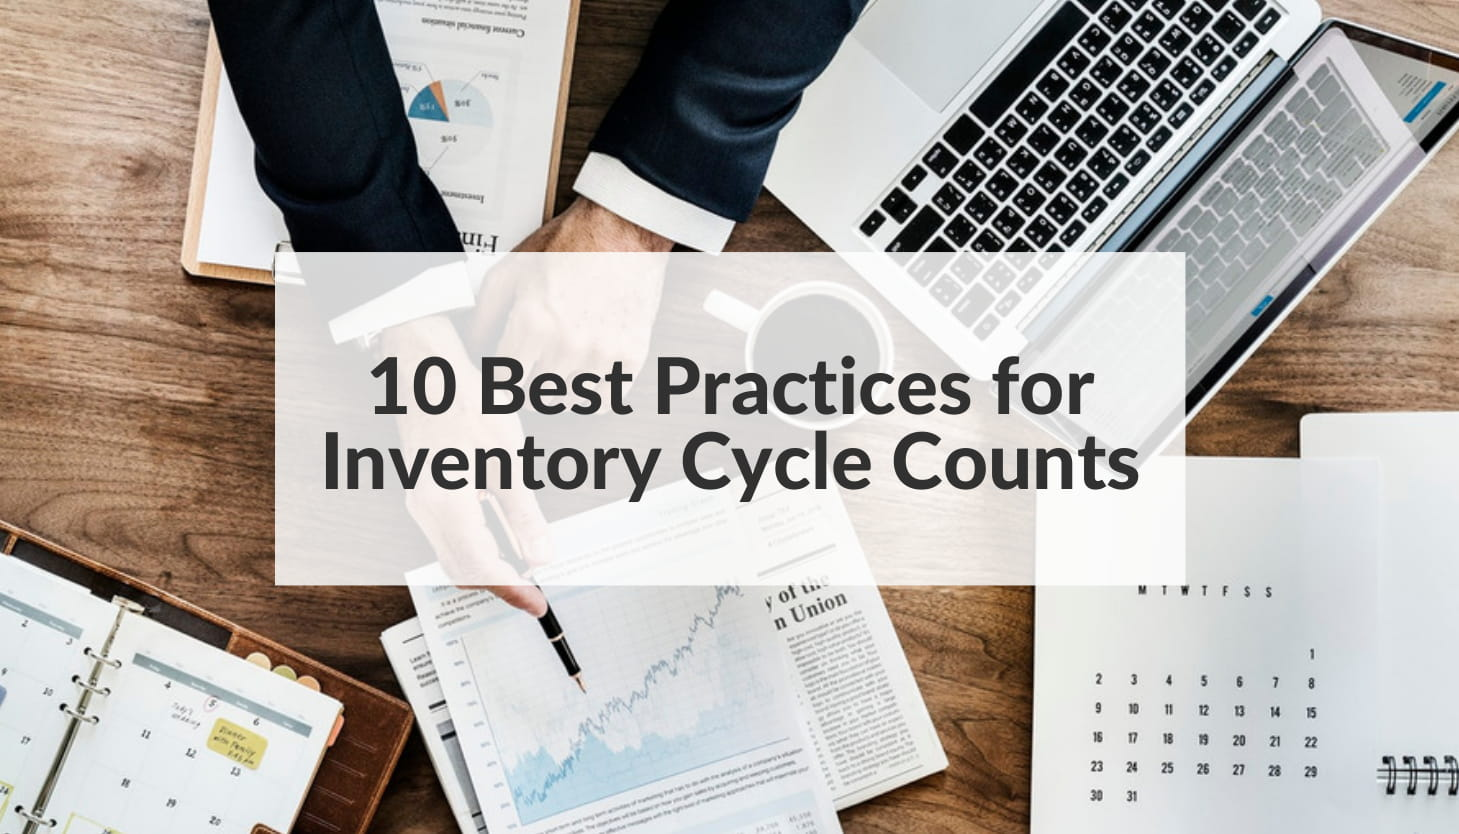 Inventory Cycle Counts